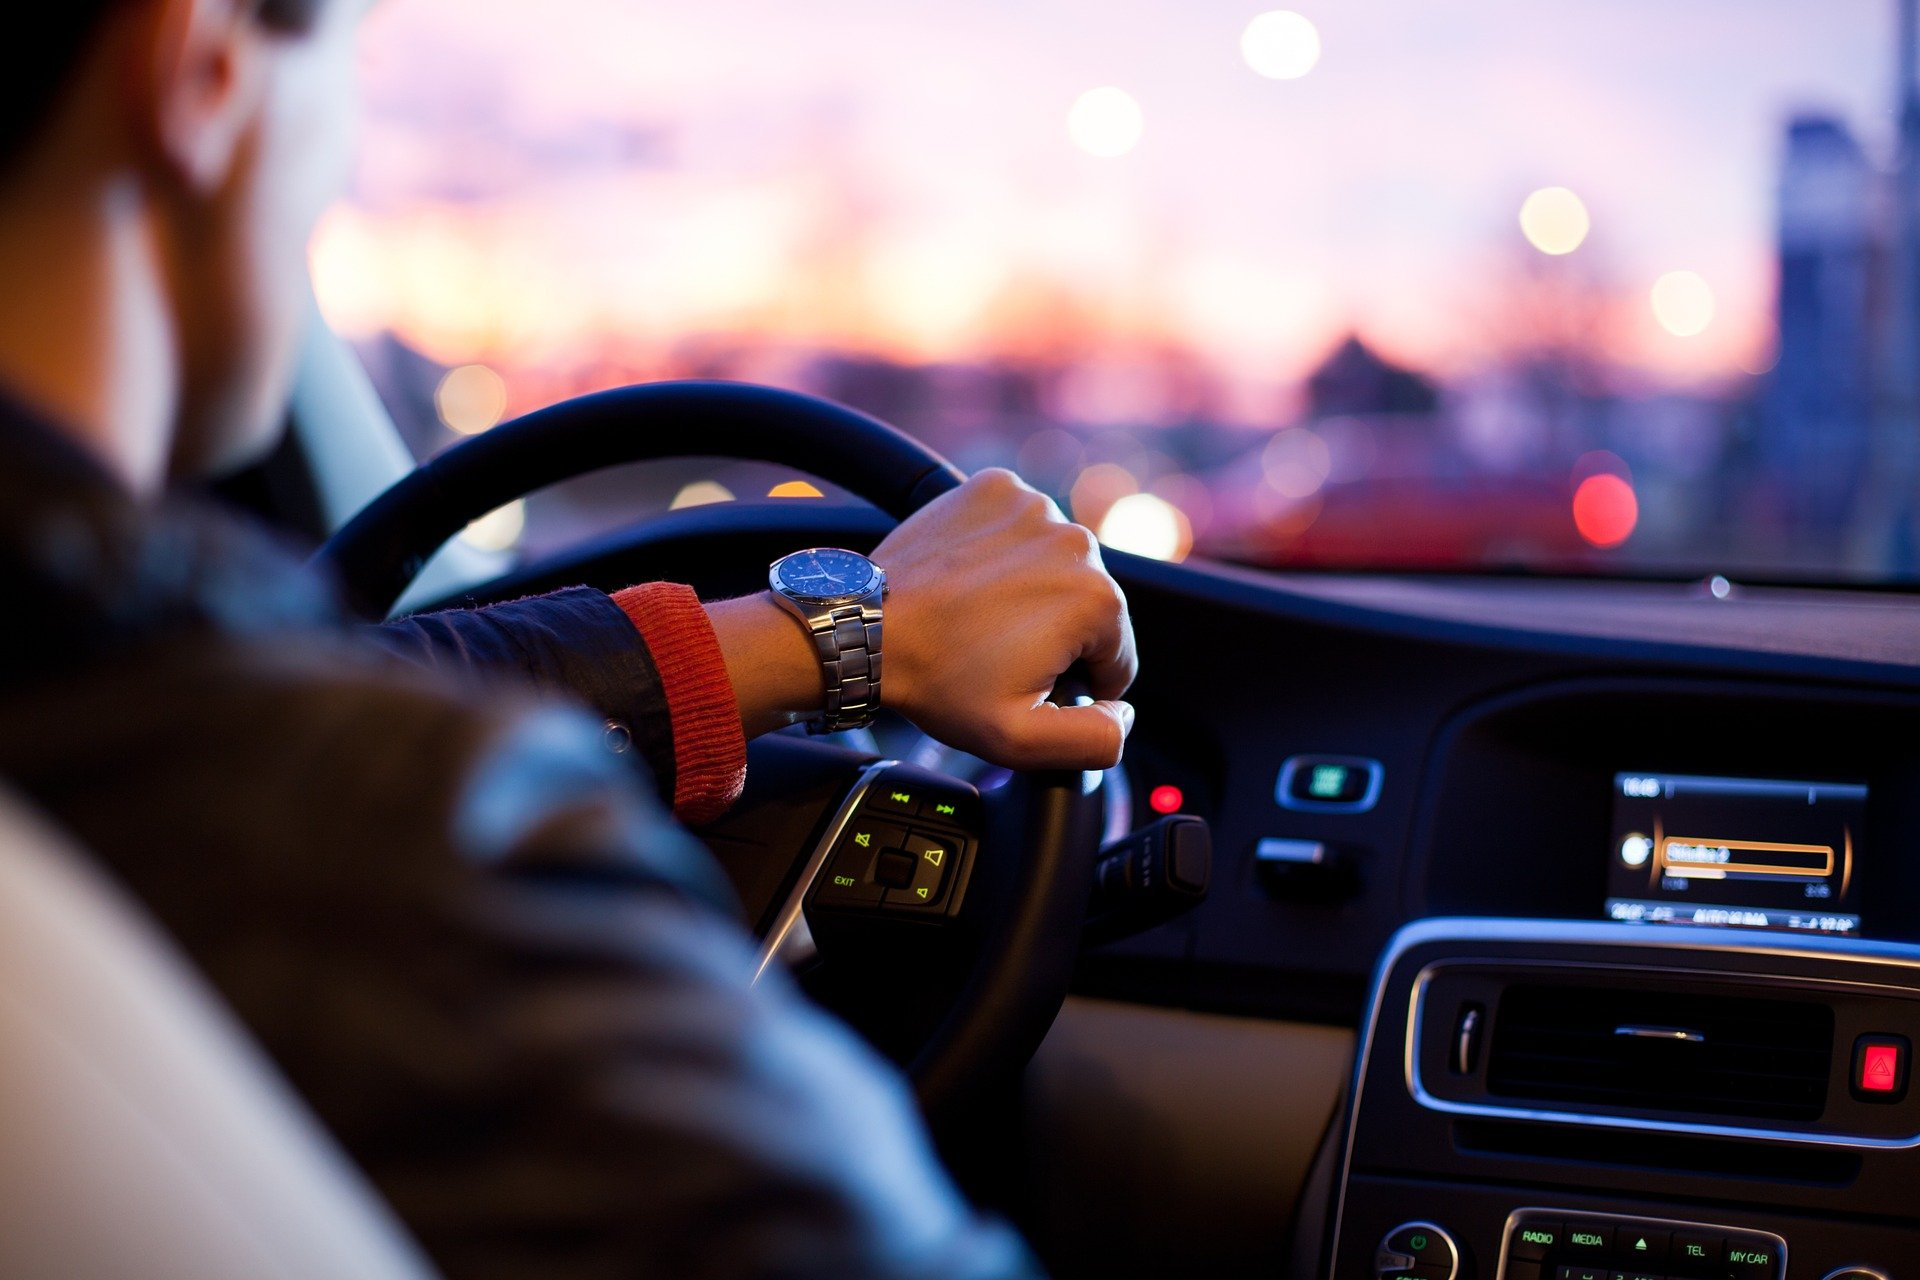 A photo of a man behind the wheel of a car at night with his hand on the steering wheel.